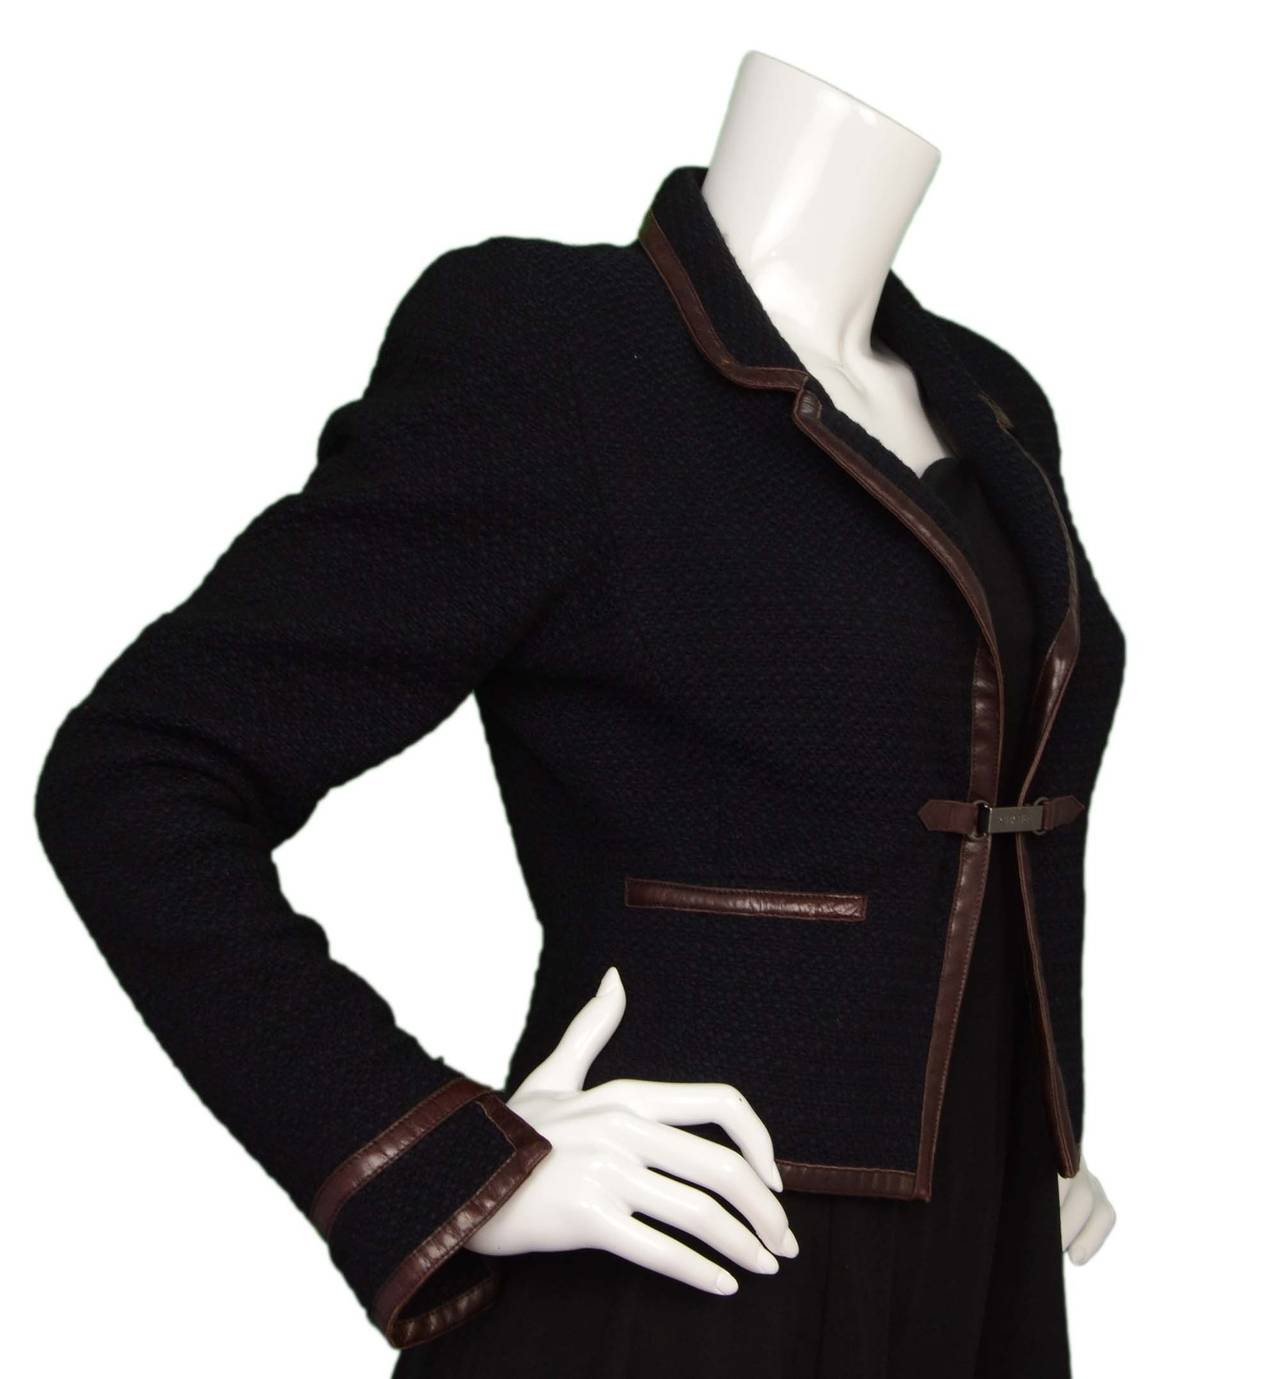 CHANEL Navy & Black Wool Tweed Jacket w/Brown Leather Trim sz 38 2